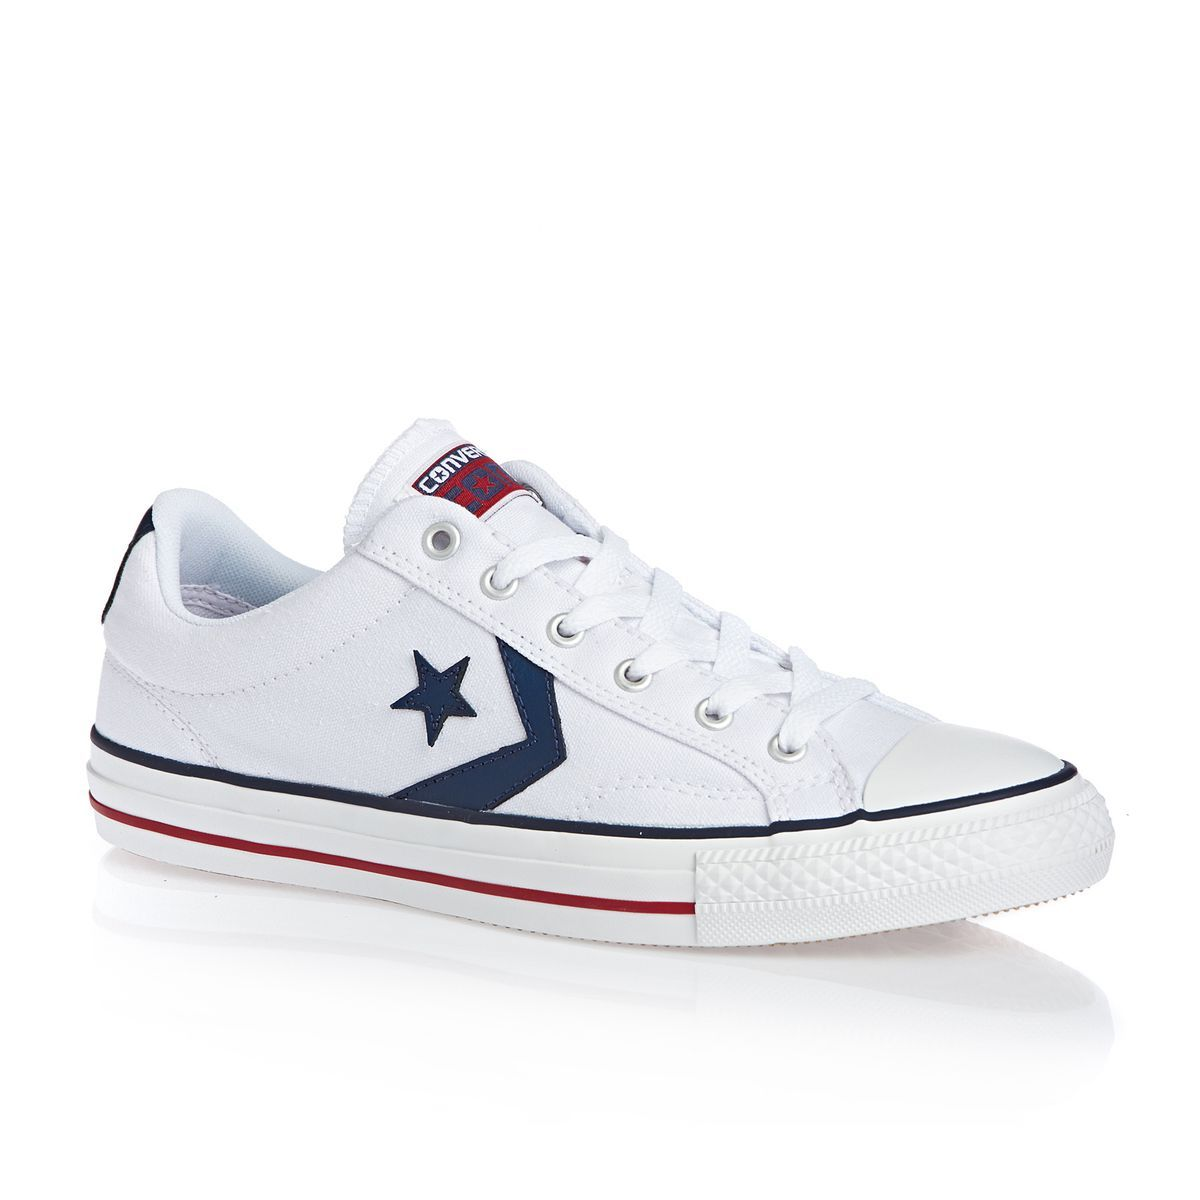 Converse CONS Remastered Star Player OX Shoes | Free